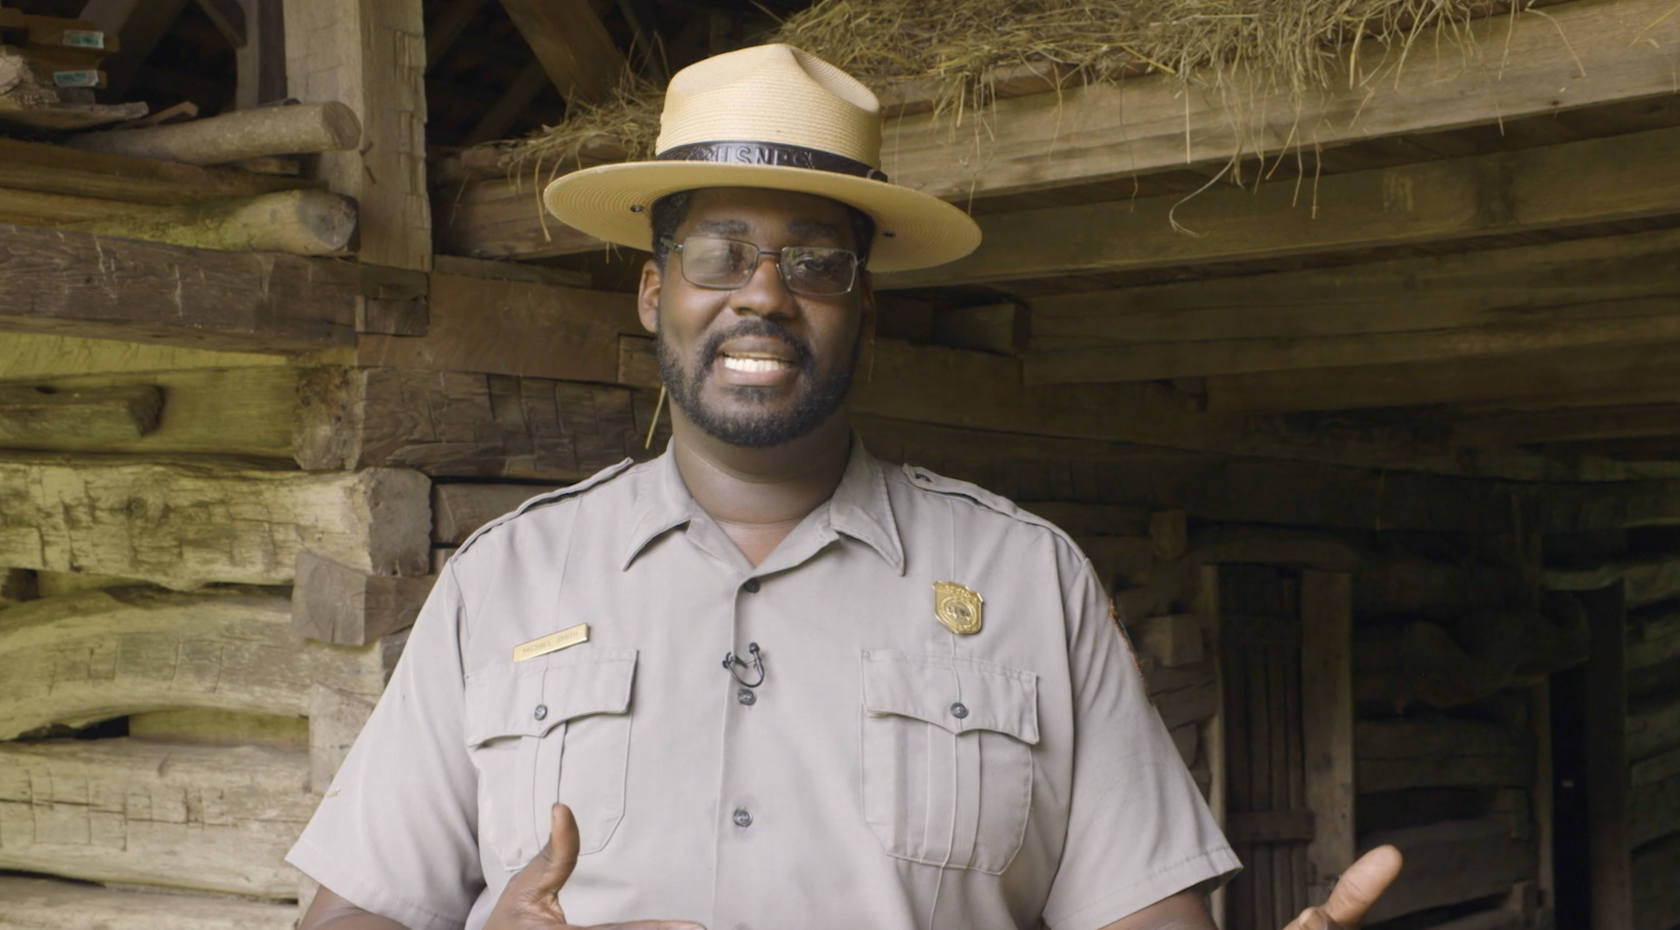 NPS employee Michael Smith stands in uniform and smiles at the camera